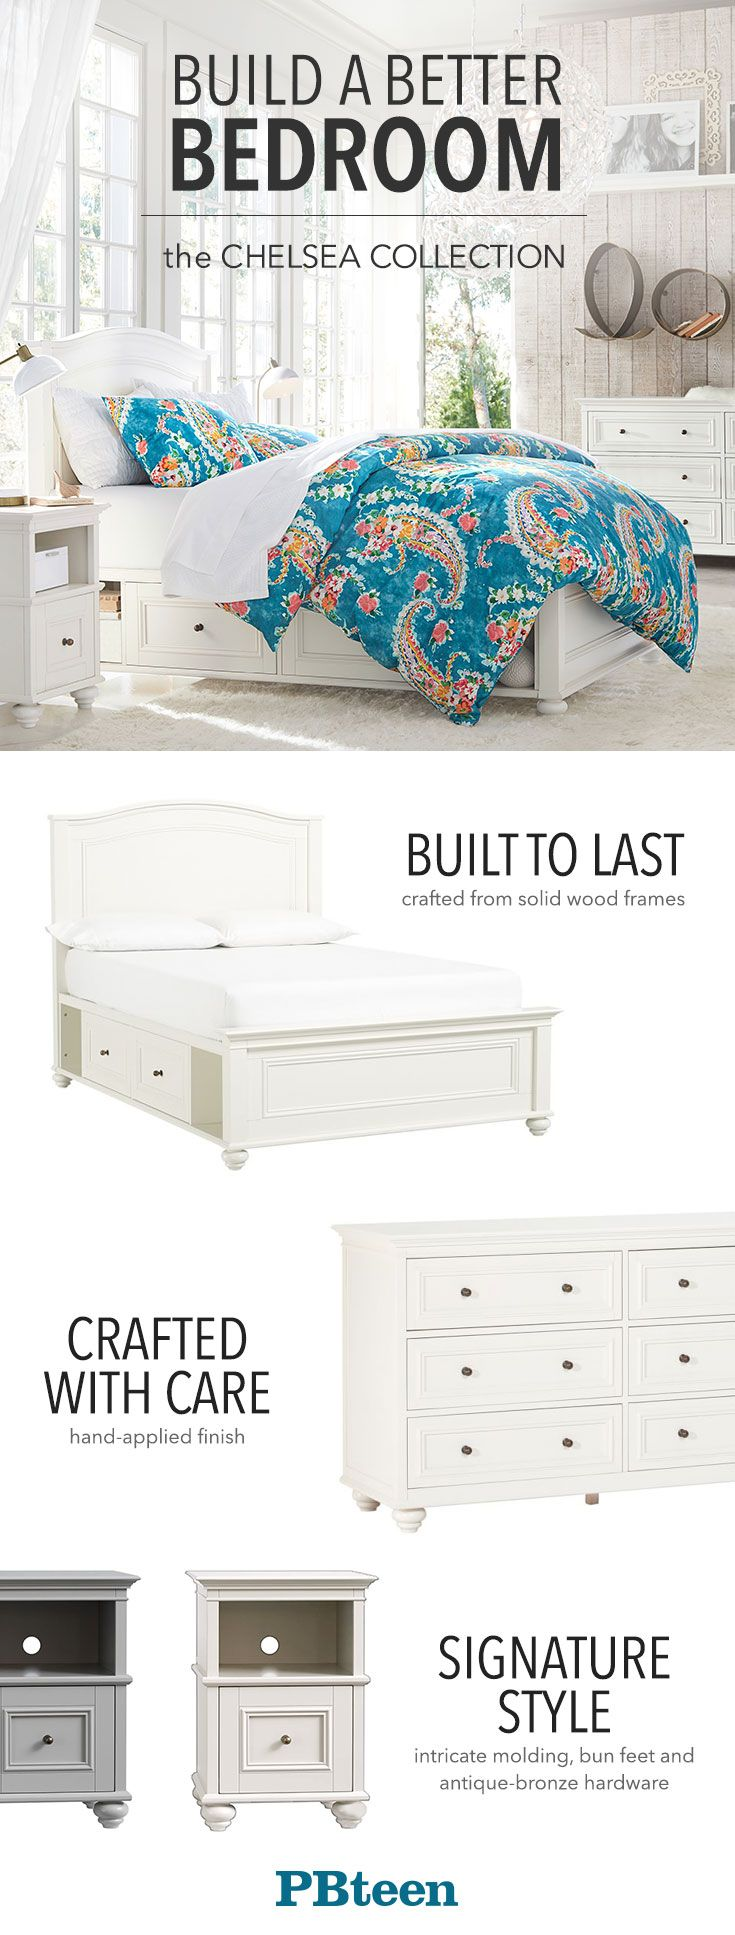 That classic detailing, that extra storage space… this bedroom furniture is made for years of sleeping chic!